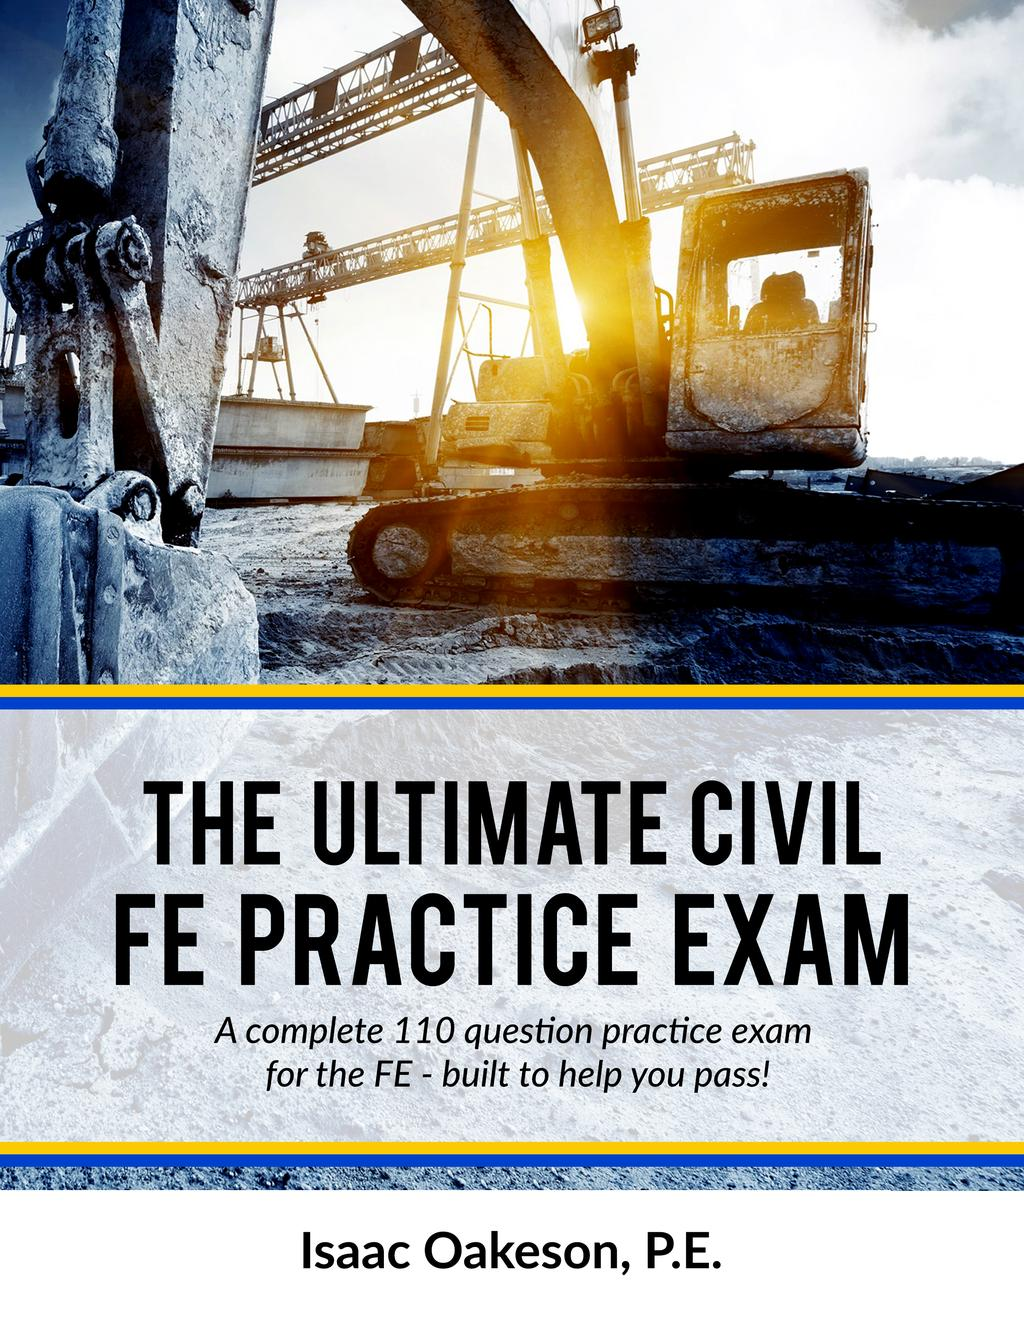 Fe Civil Practice Exam Pdf Free